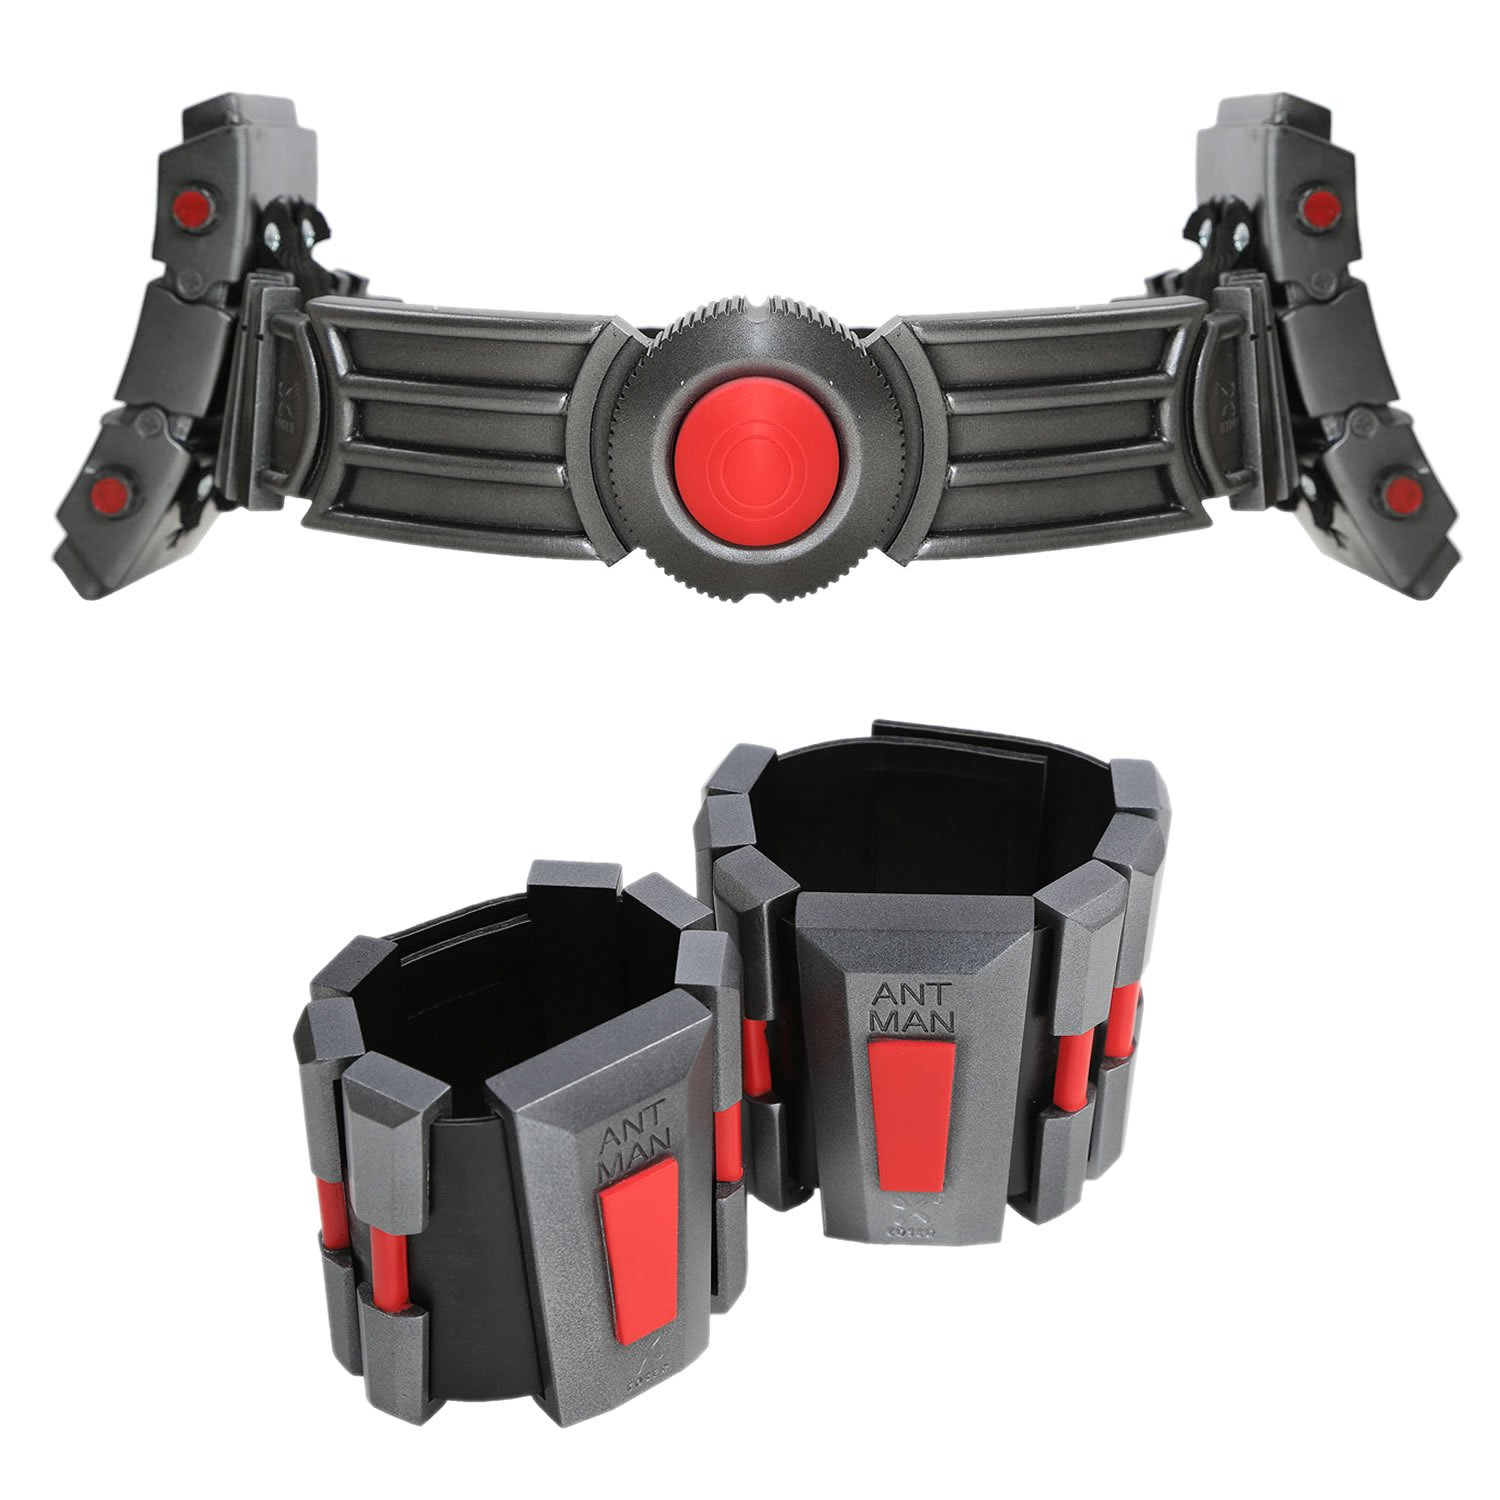 xcoser AM Belt Wristguard Without LED Light Deluxe Cosplay Updated Version Resin Props Buckle Holster Costume Accessories Mens